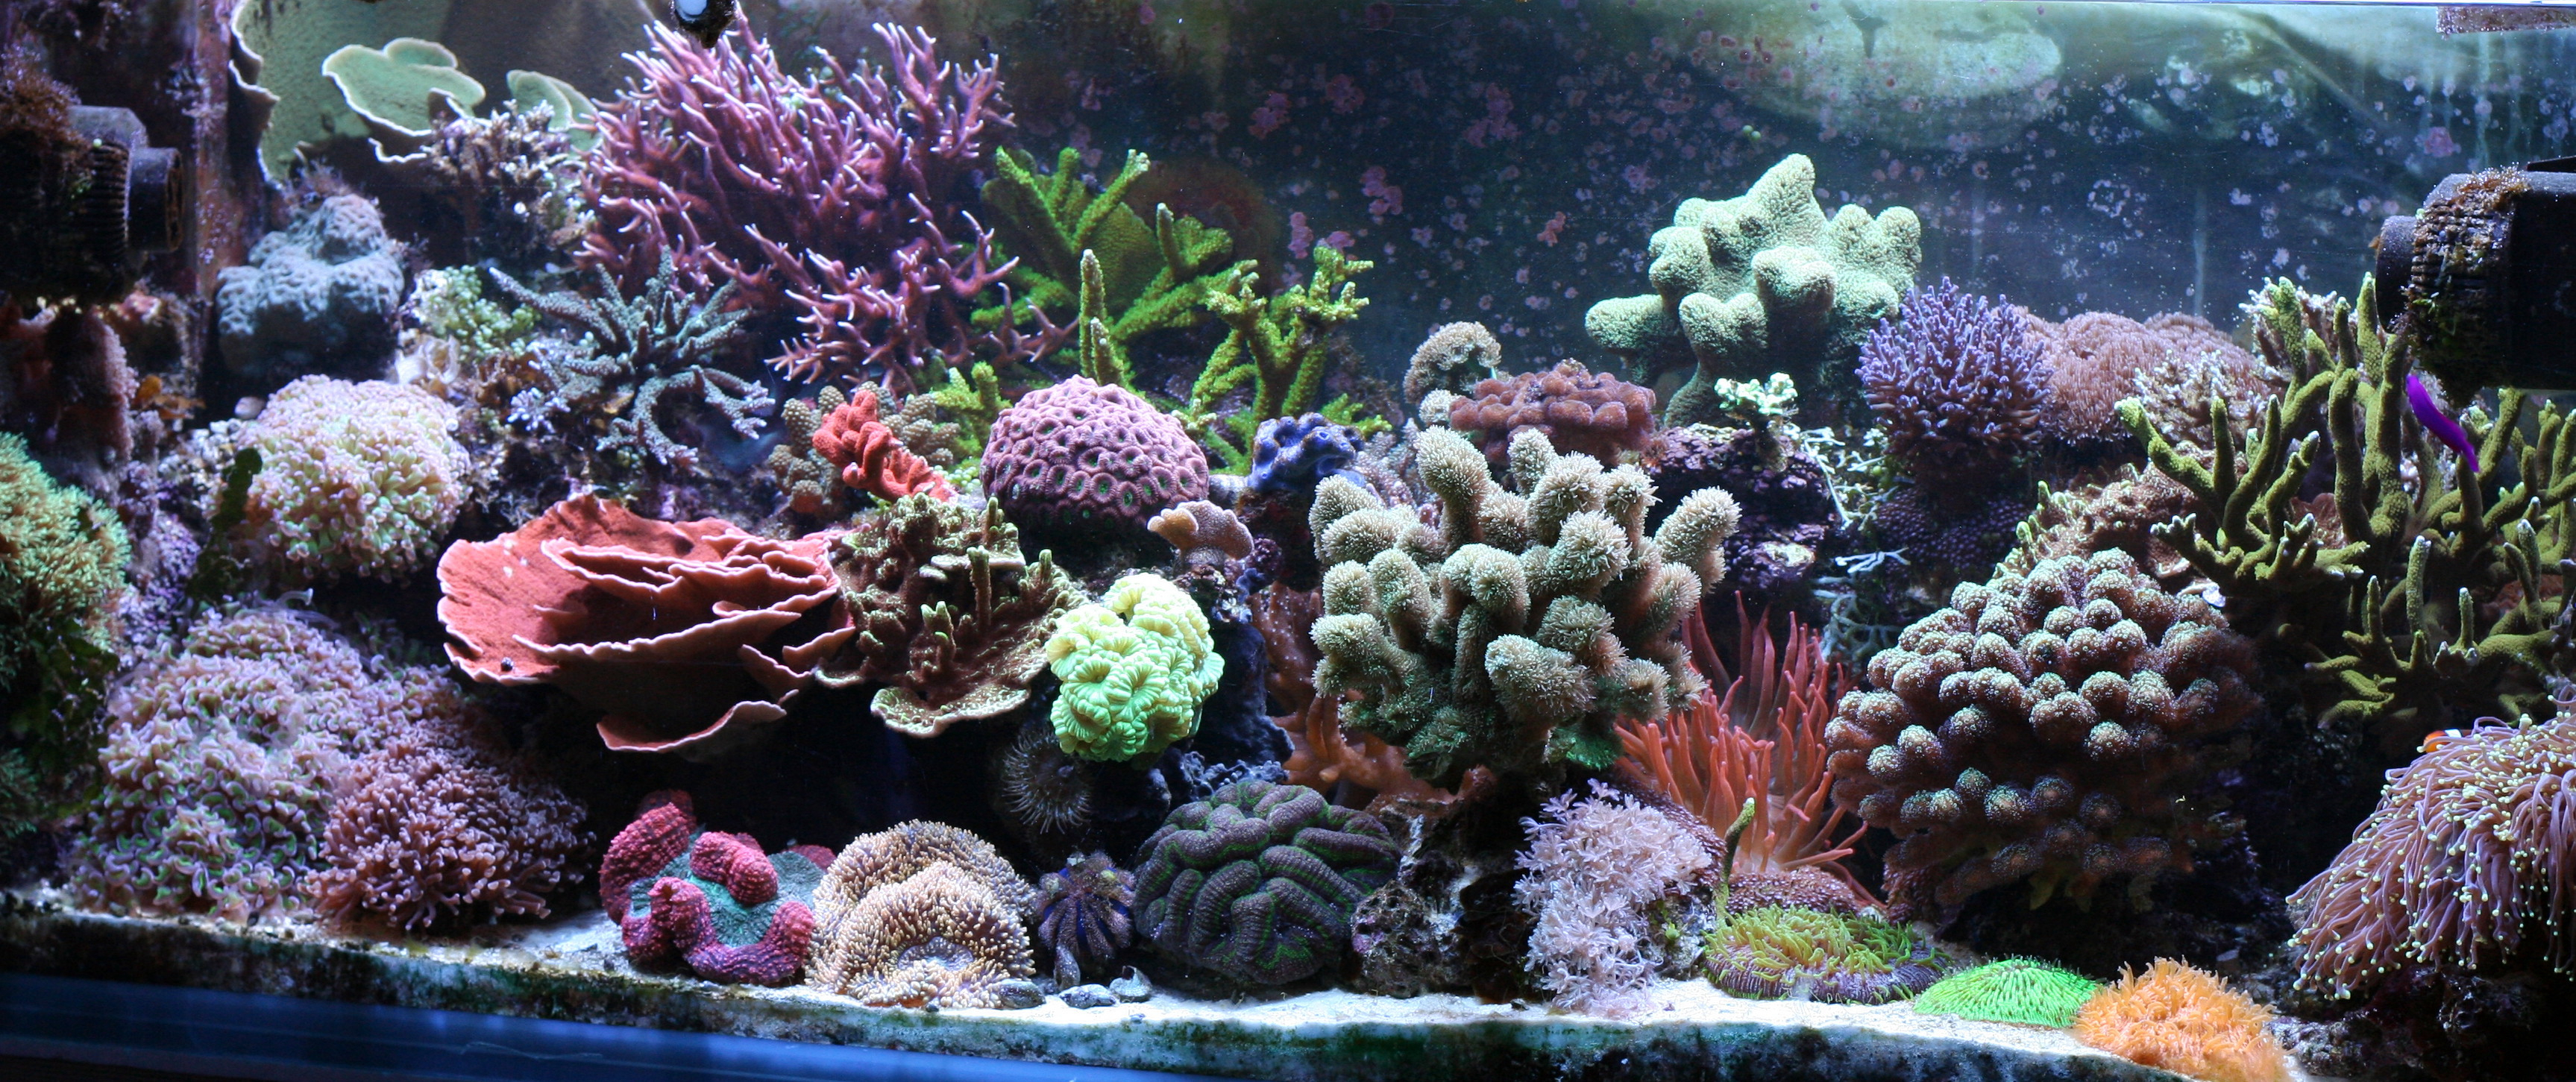 File:Reef Aquarium At Home.jpg - Wikimedia Commons